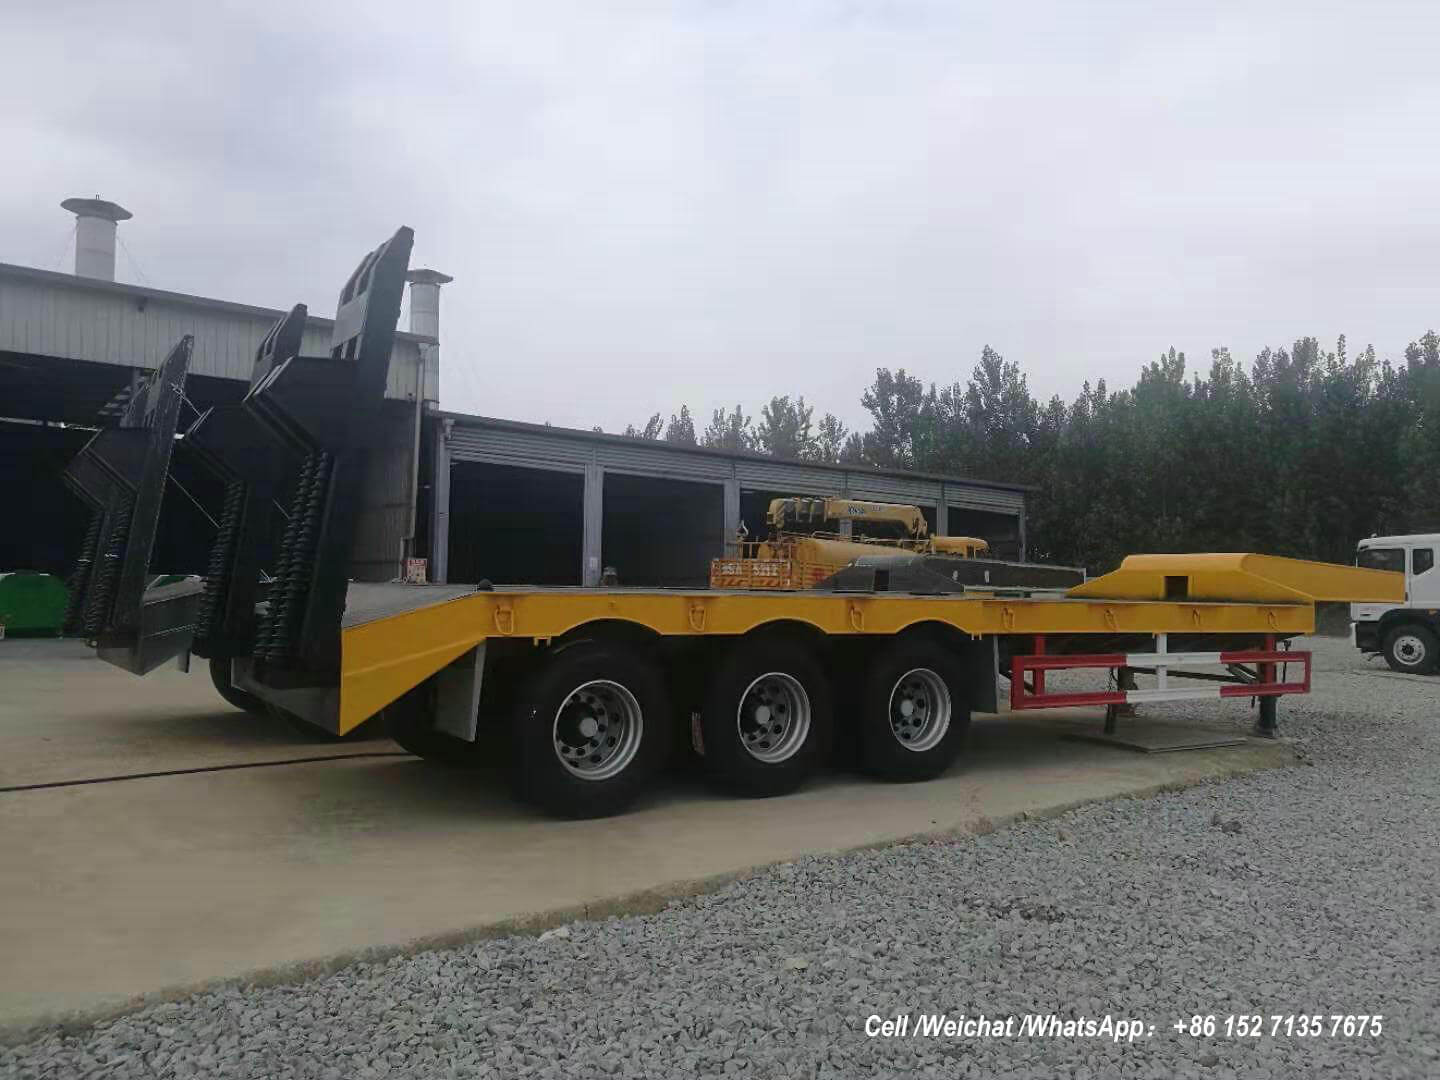 2 Sets 13M Low Bed Trailer 3m Wide 60 Tons With 14T BPW Axles and 4pcs Container Locks